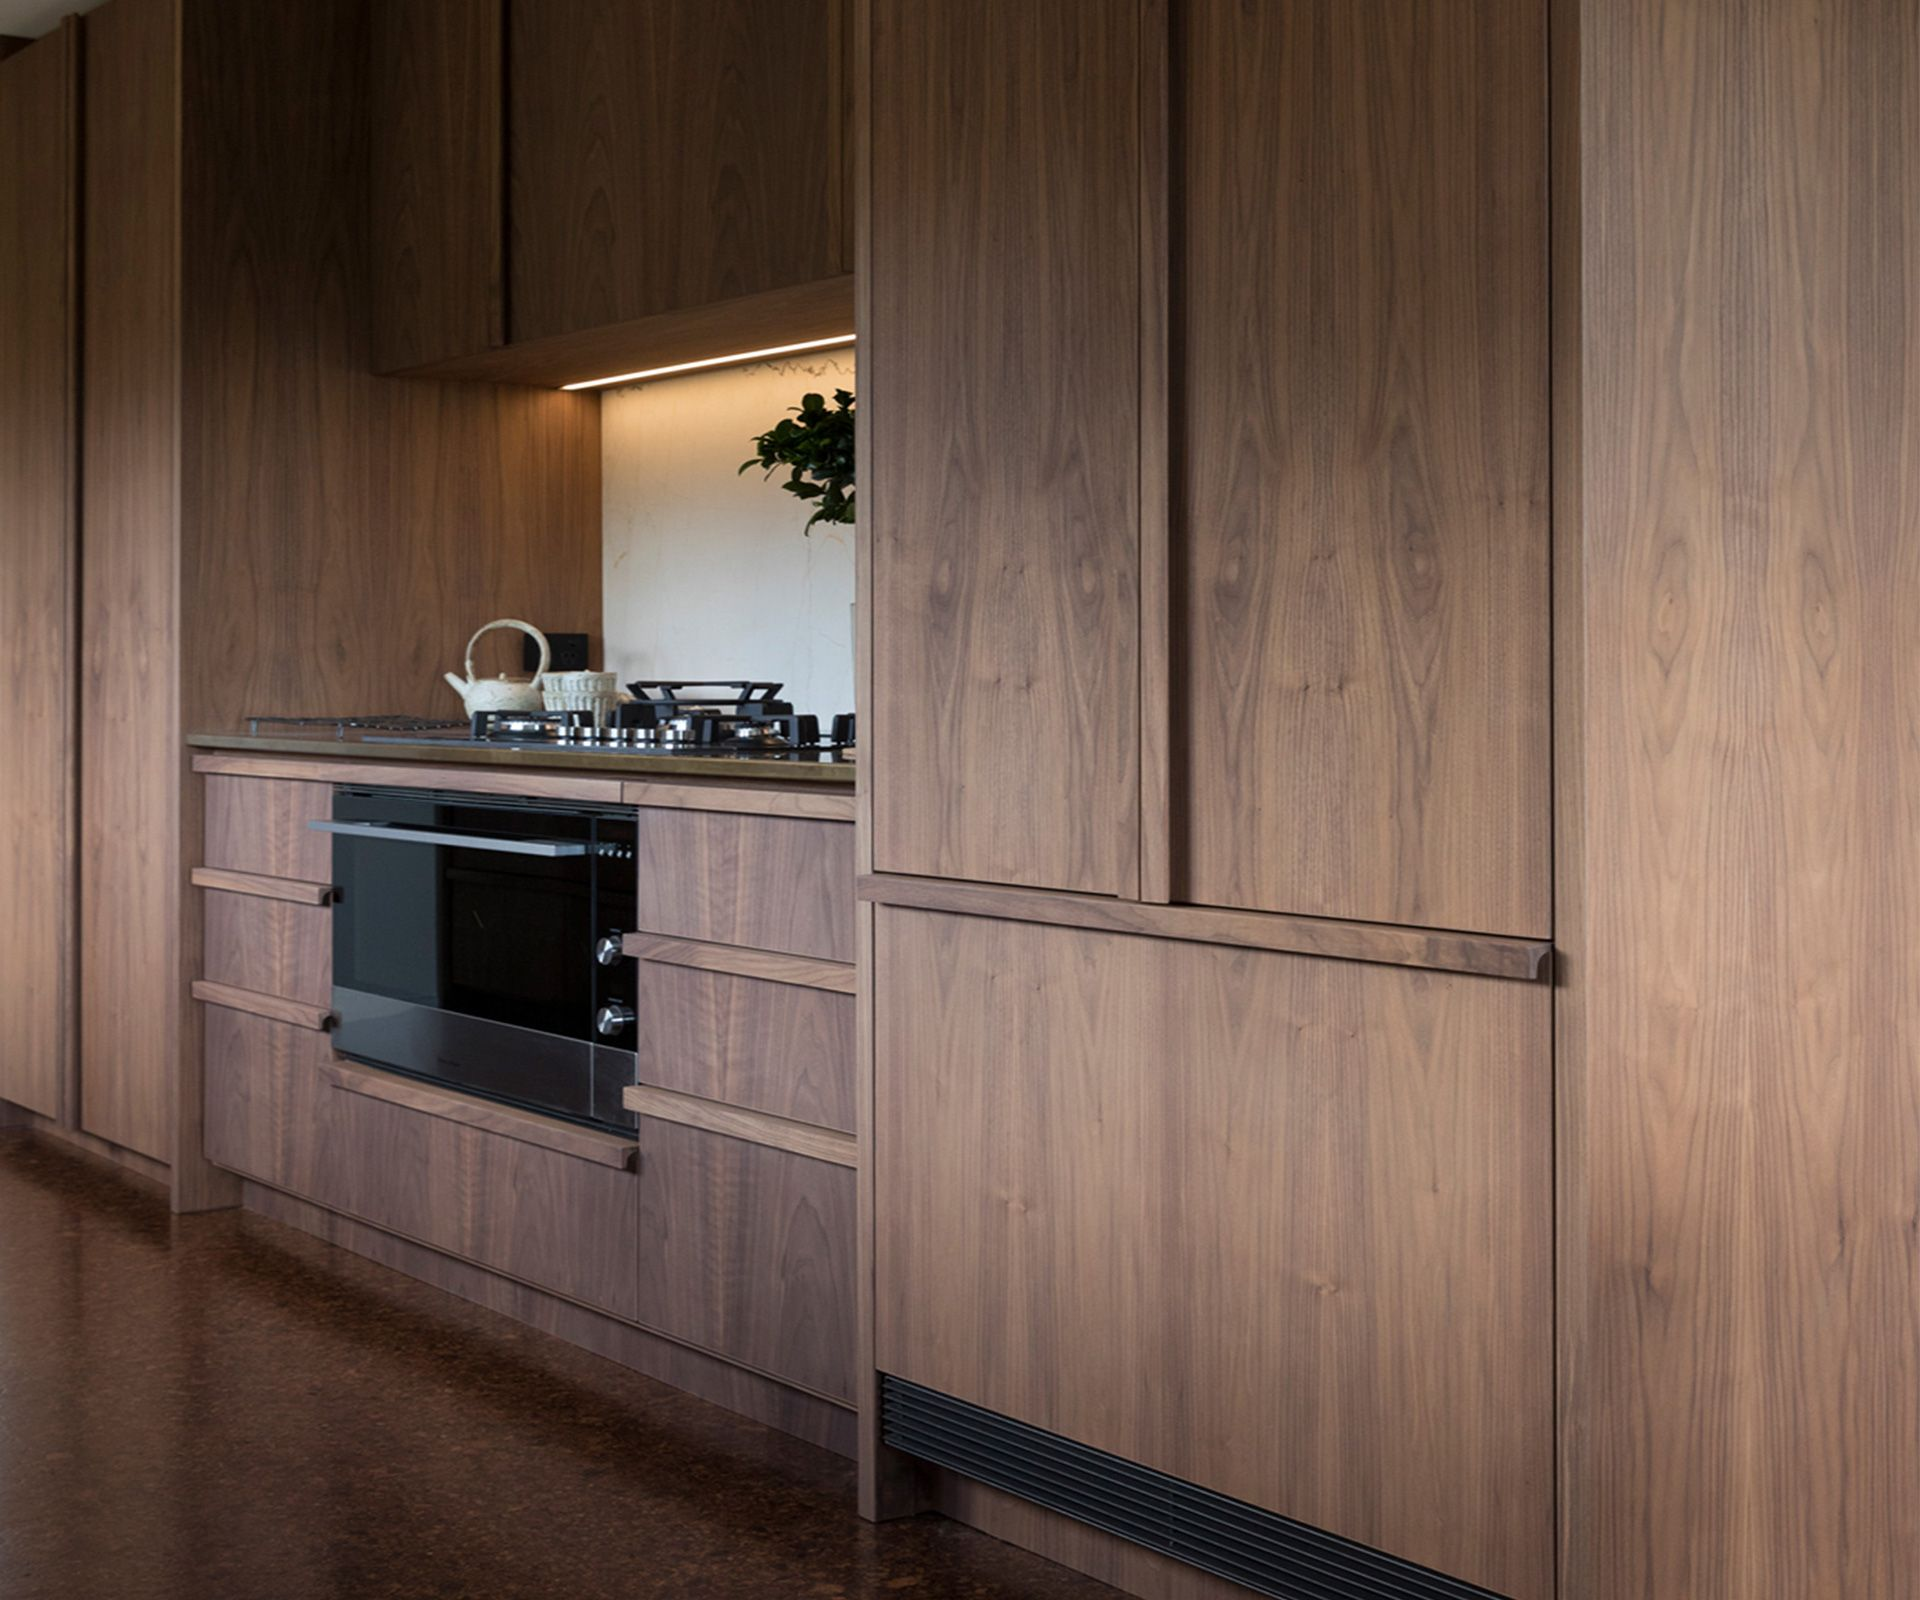 Kitchen for simon devitt by bureaux walnut veneer for Veneer for kitchen cabinets